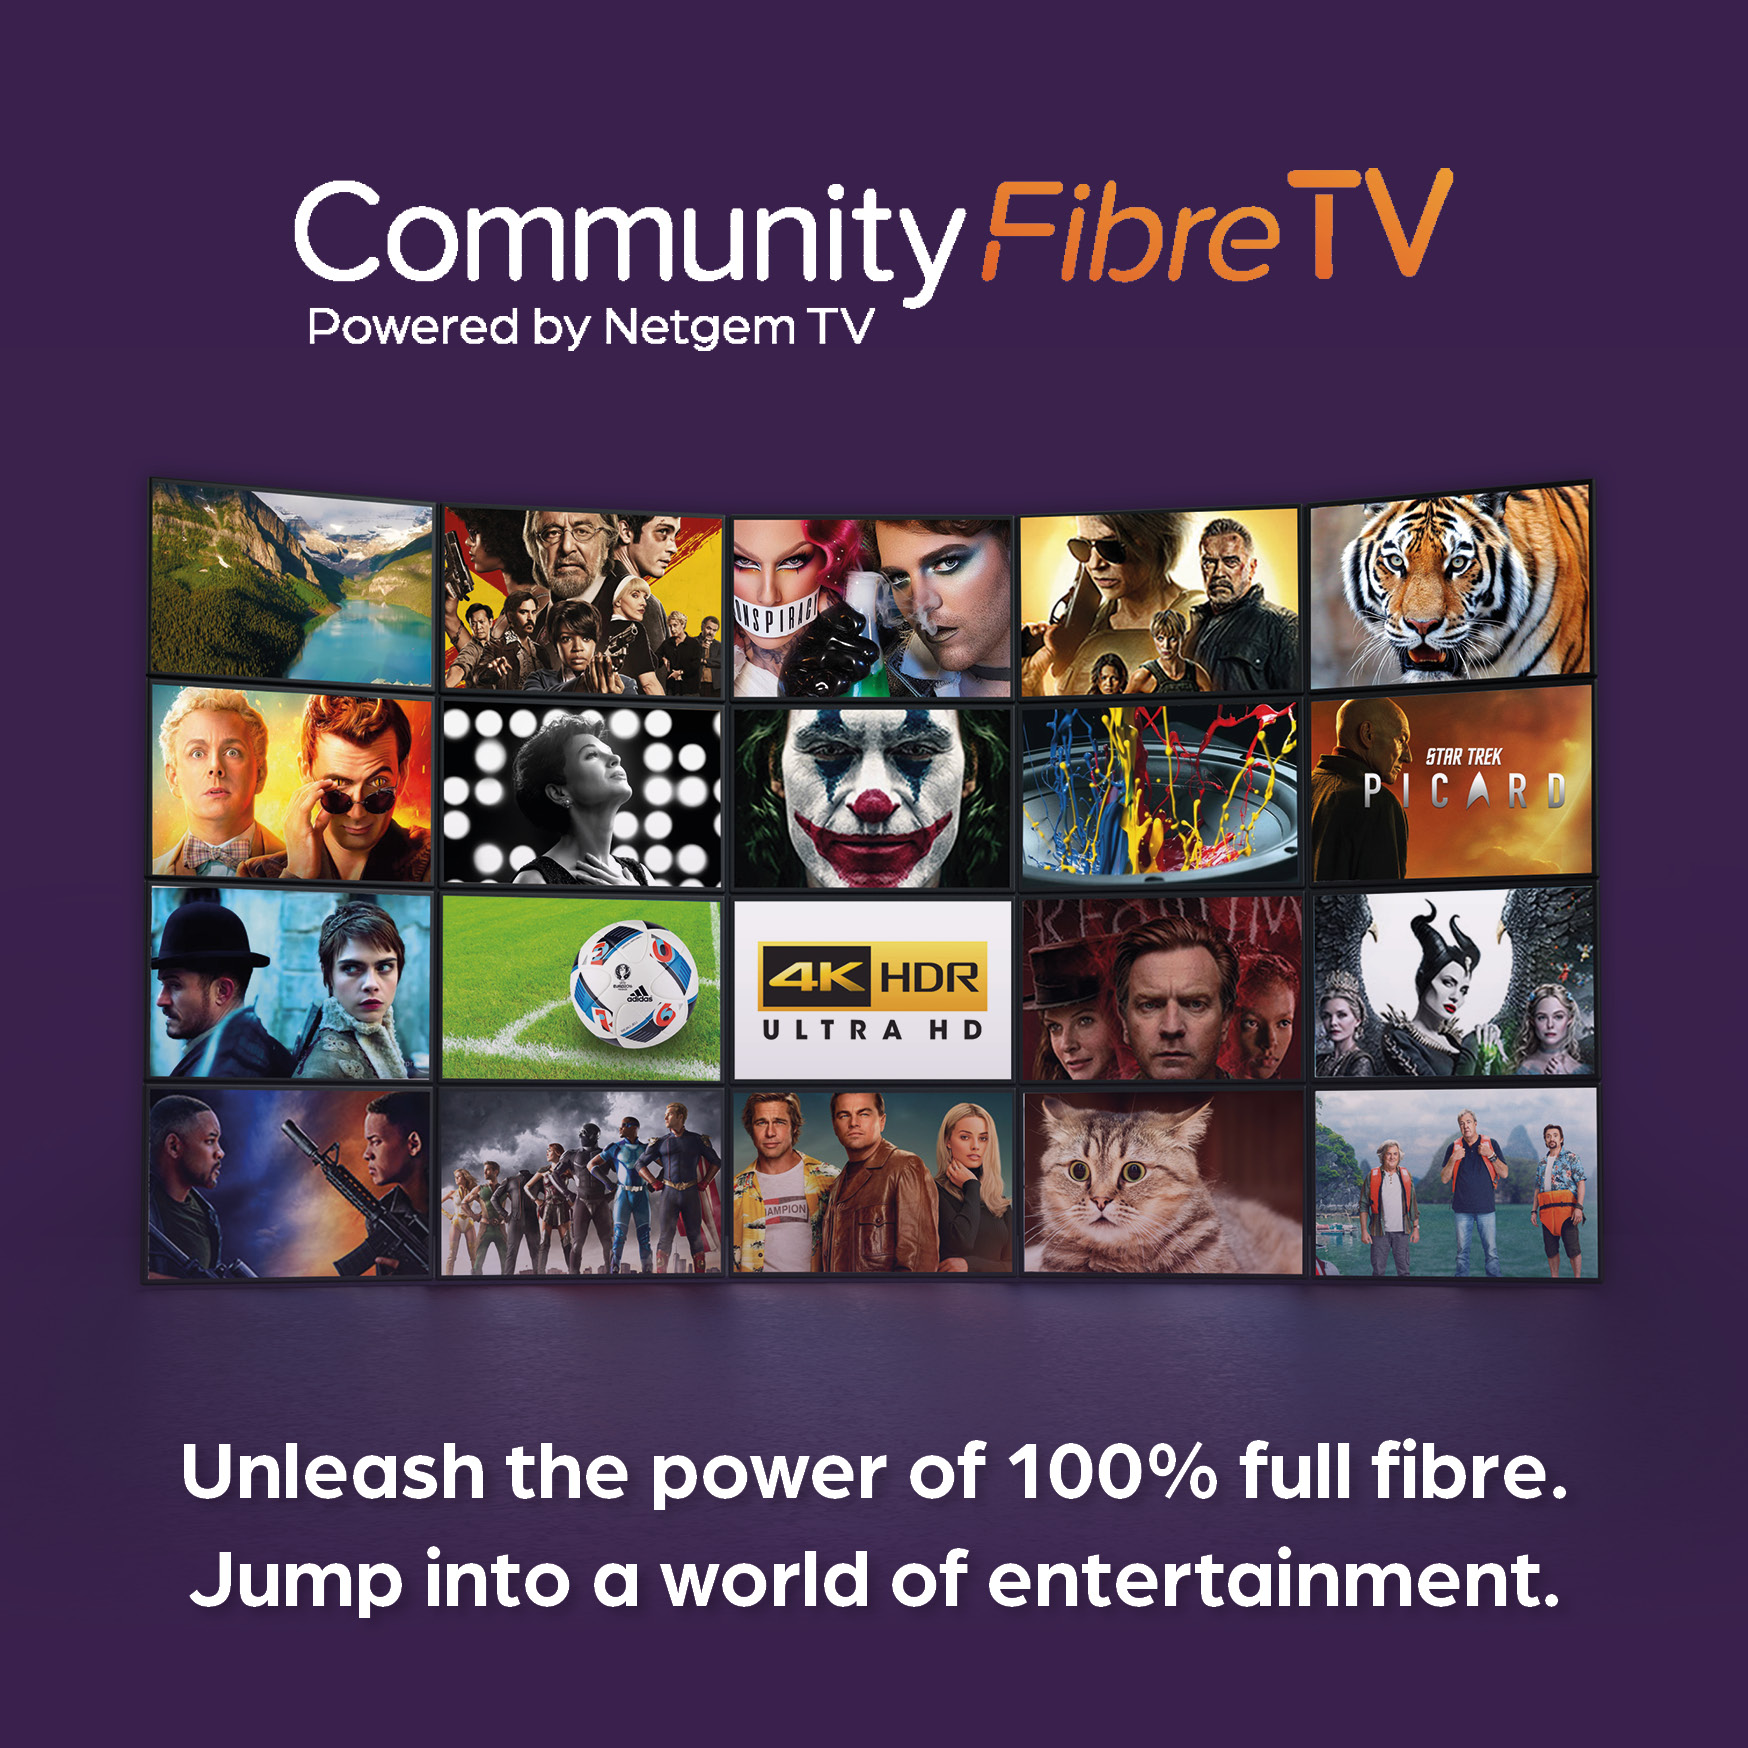 Community Fibre unleashes the power of full-fibre broadband to deliver a new world of entertainment